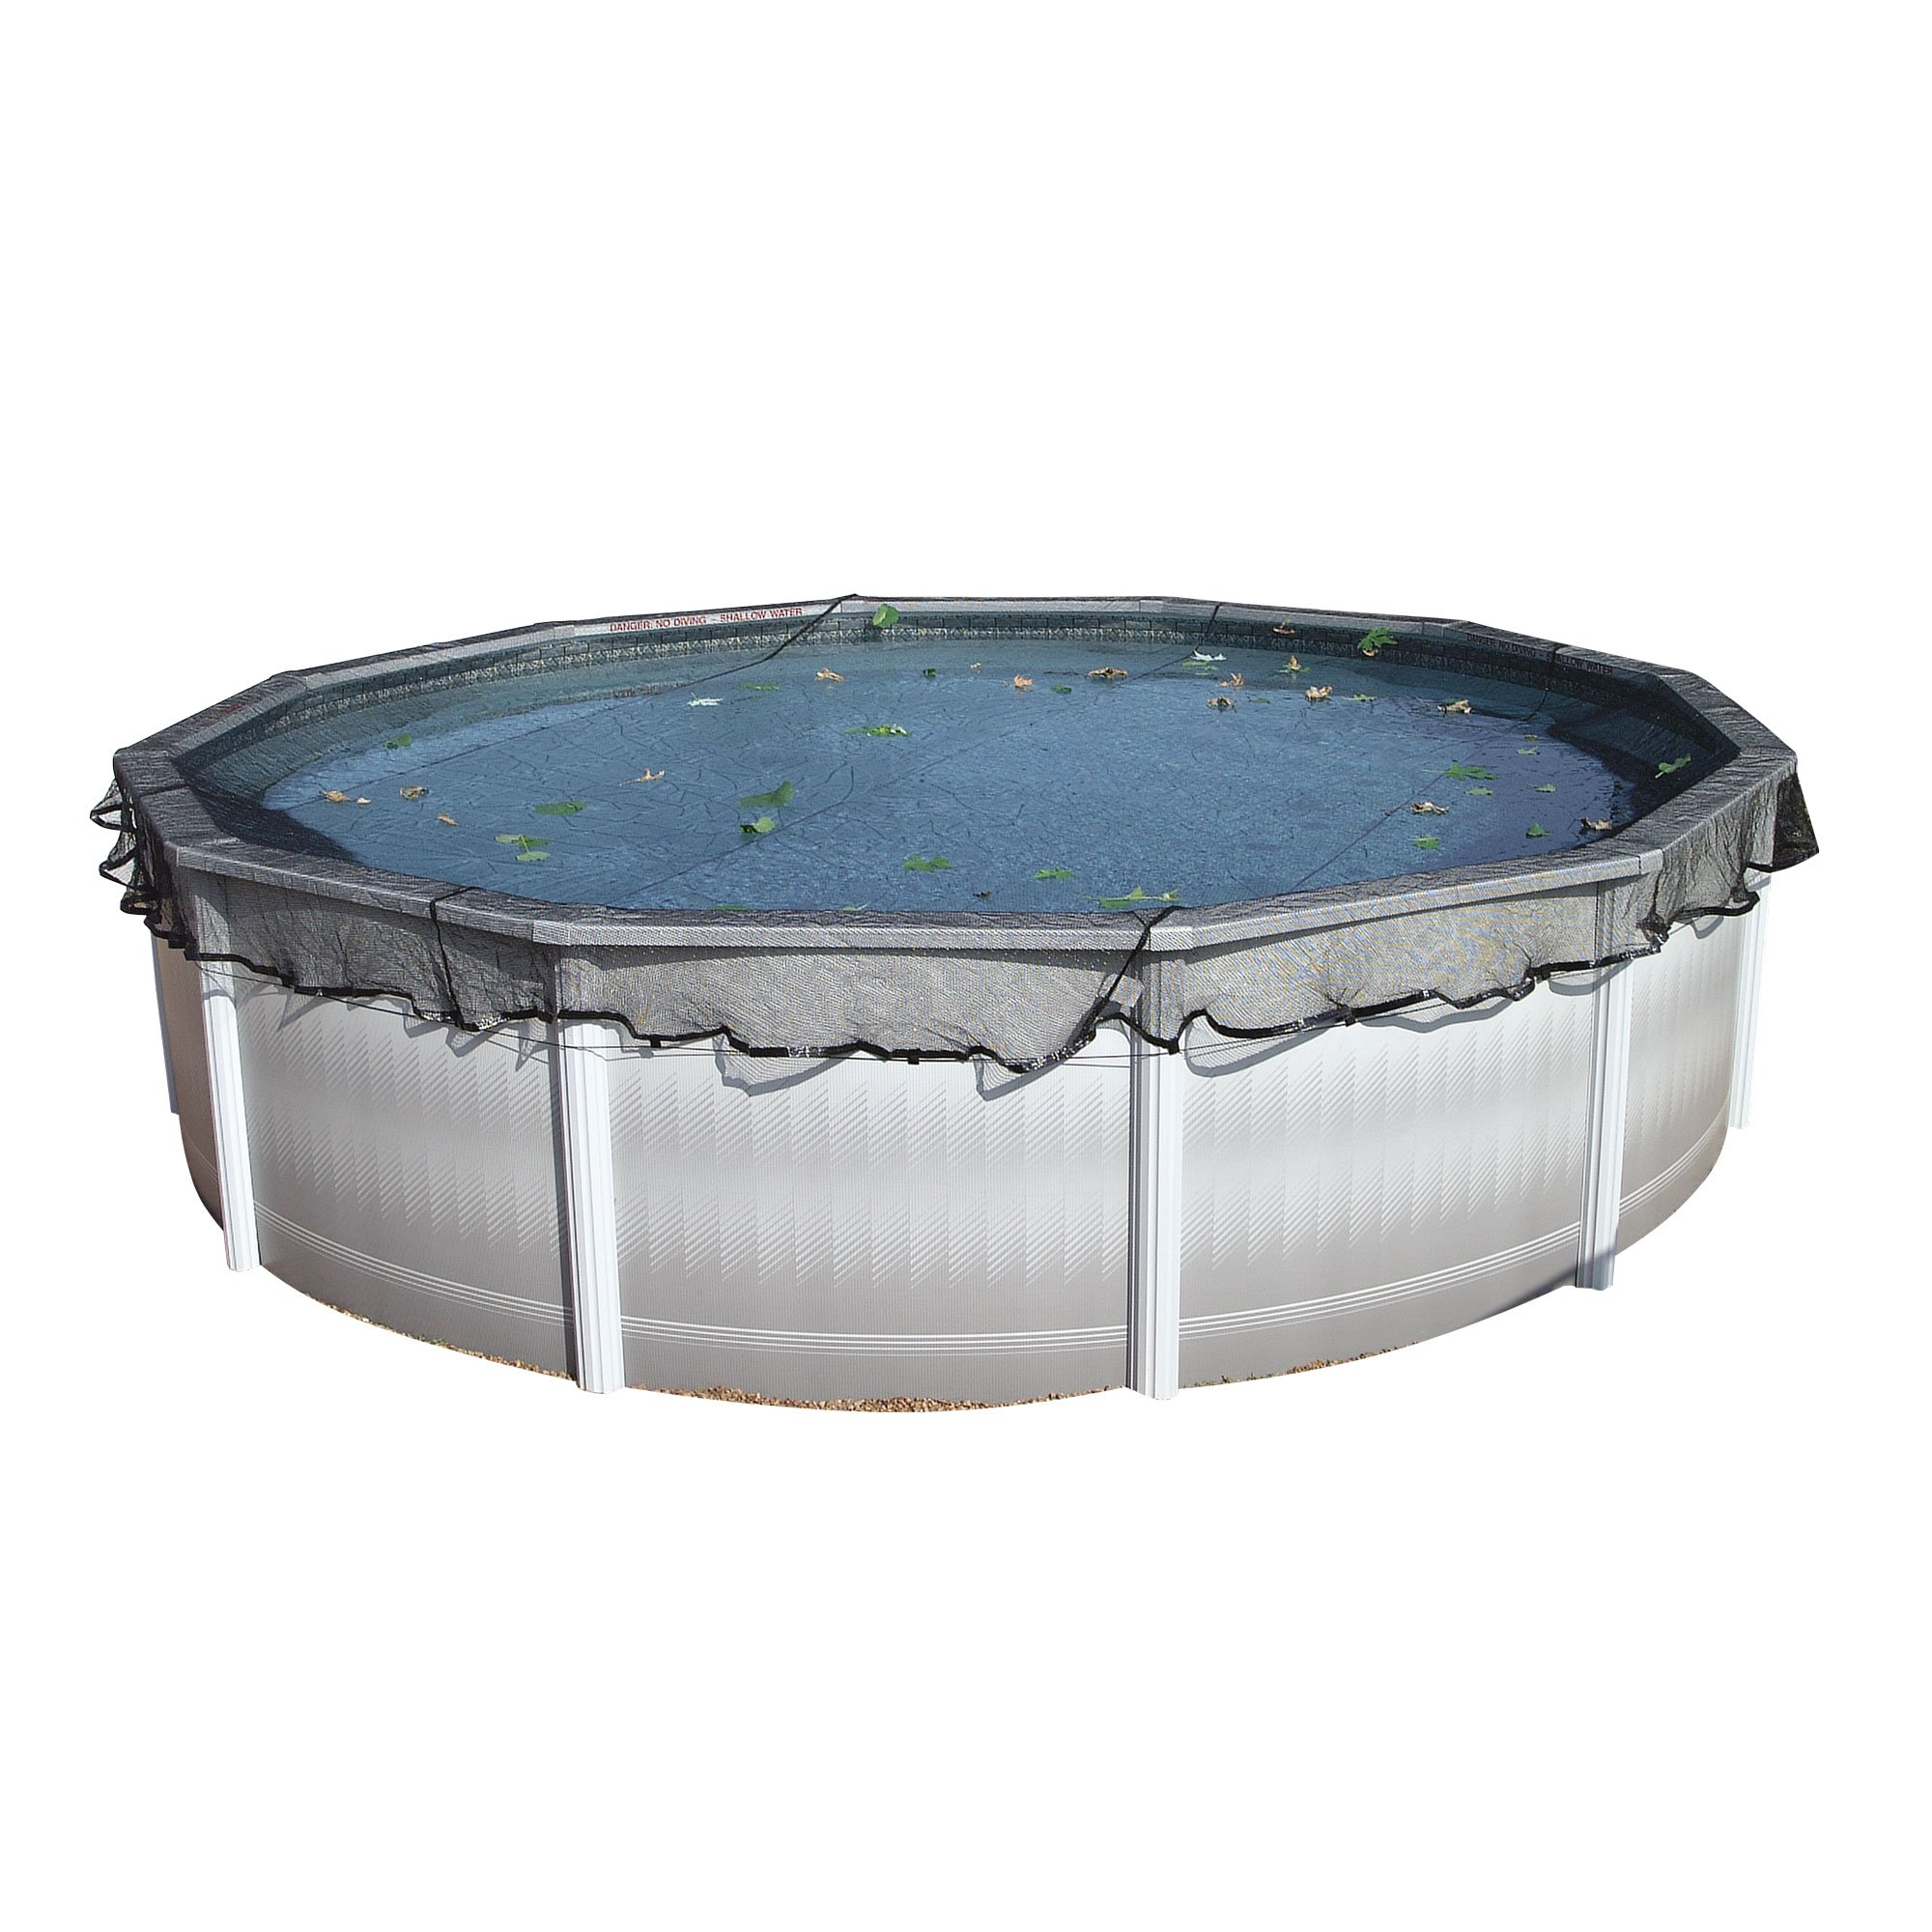 Harris Deluxe Leaf Net for 28' Above Ground Round Pool by Harris